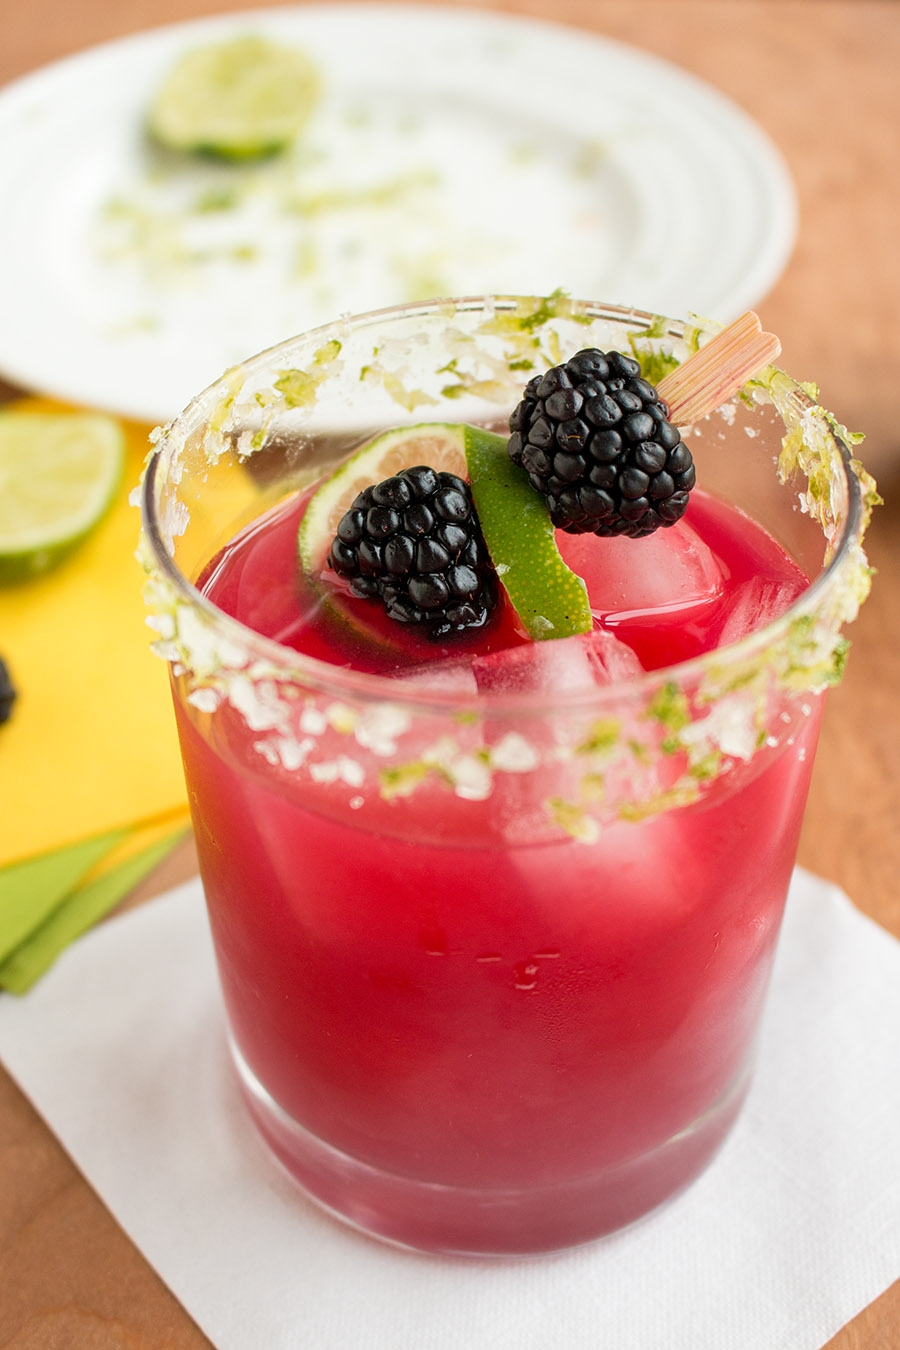 Spicy Blackberry Habanero Margarita